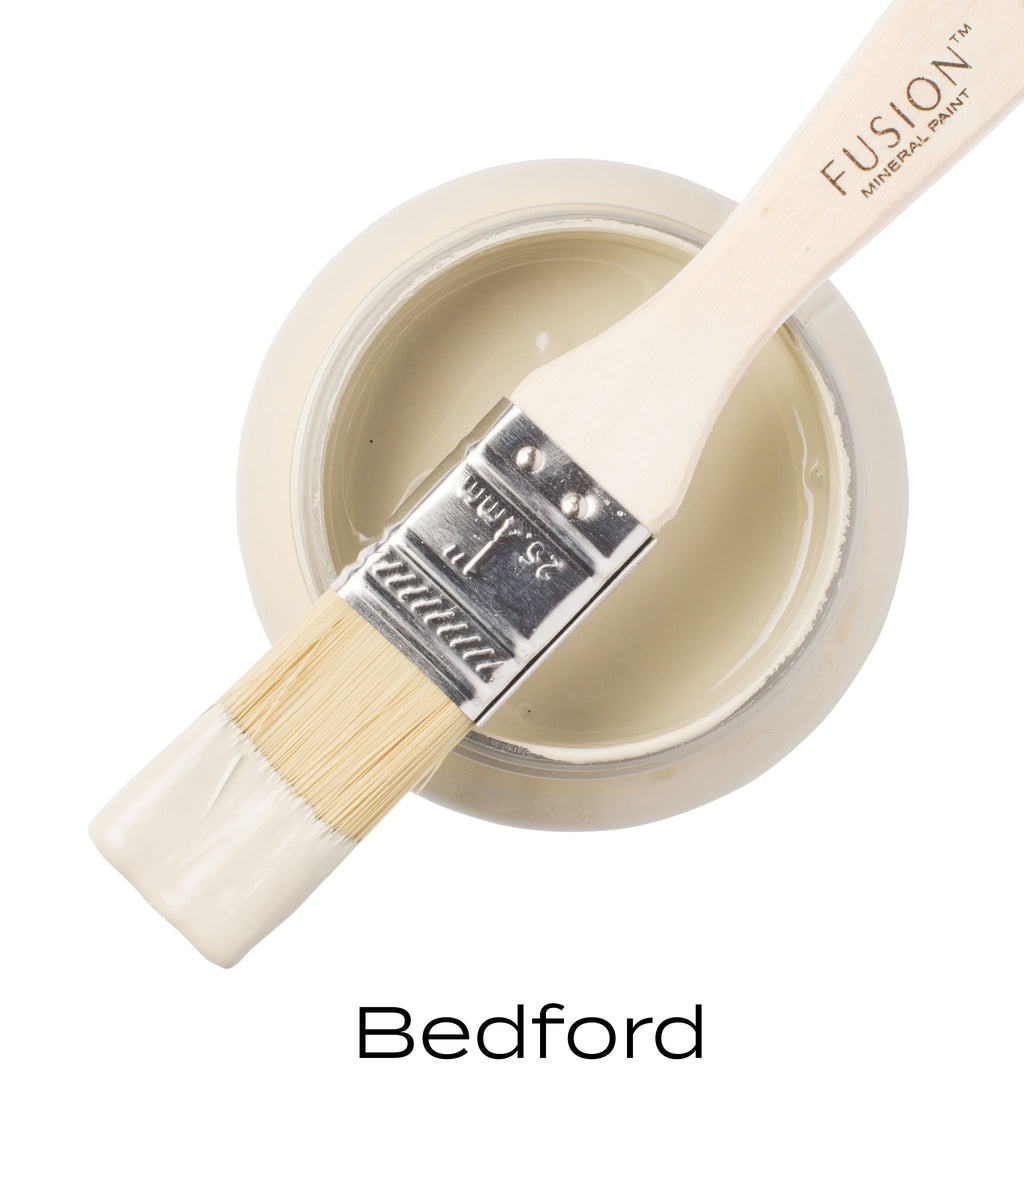 Bedford Fusion Mineral Paint Near Me